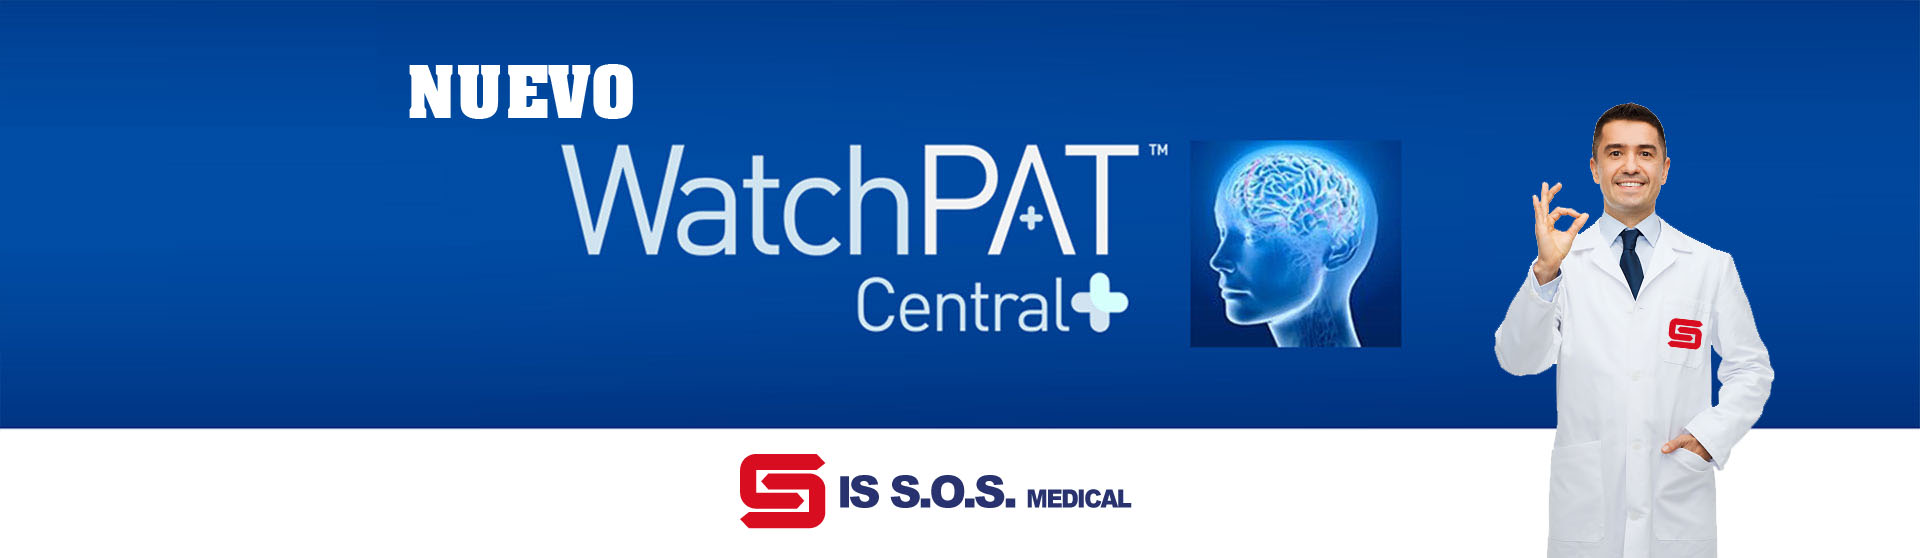 WatchPAT_central